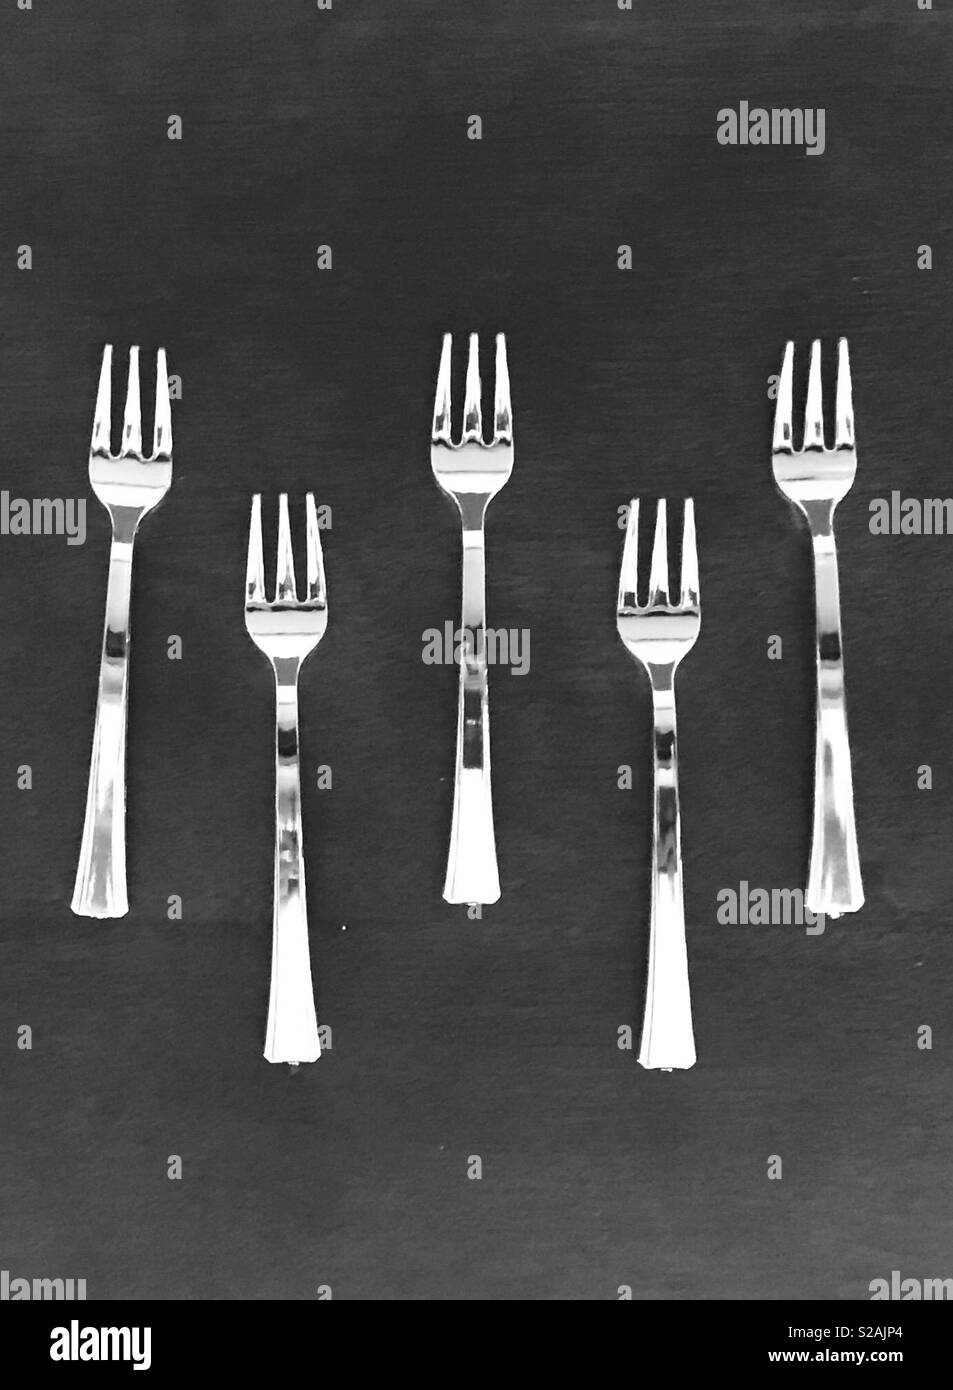 Silver shiny forks lined up in a row on a dark wooden back ground - Stock Image